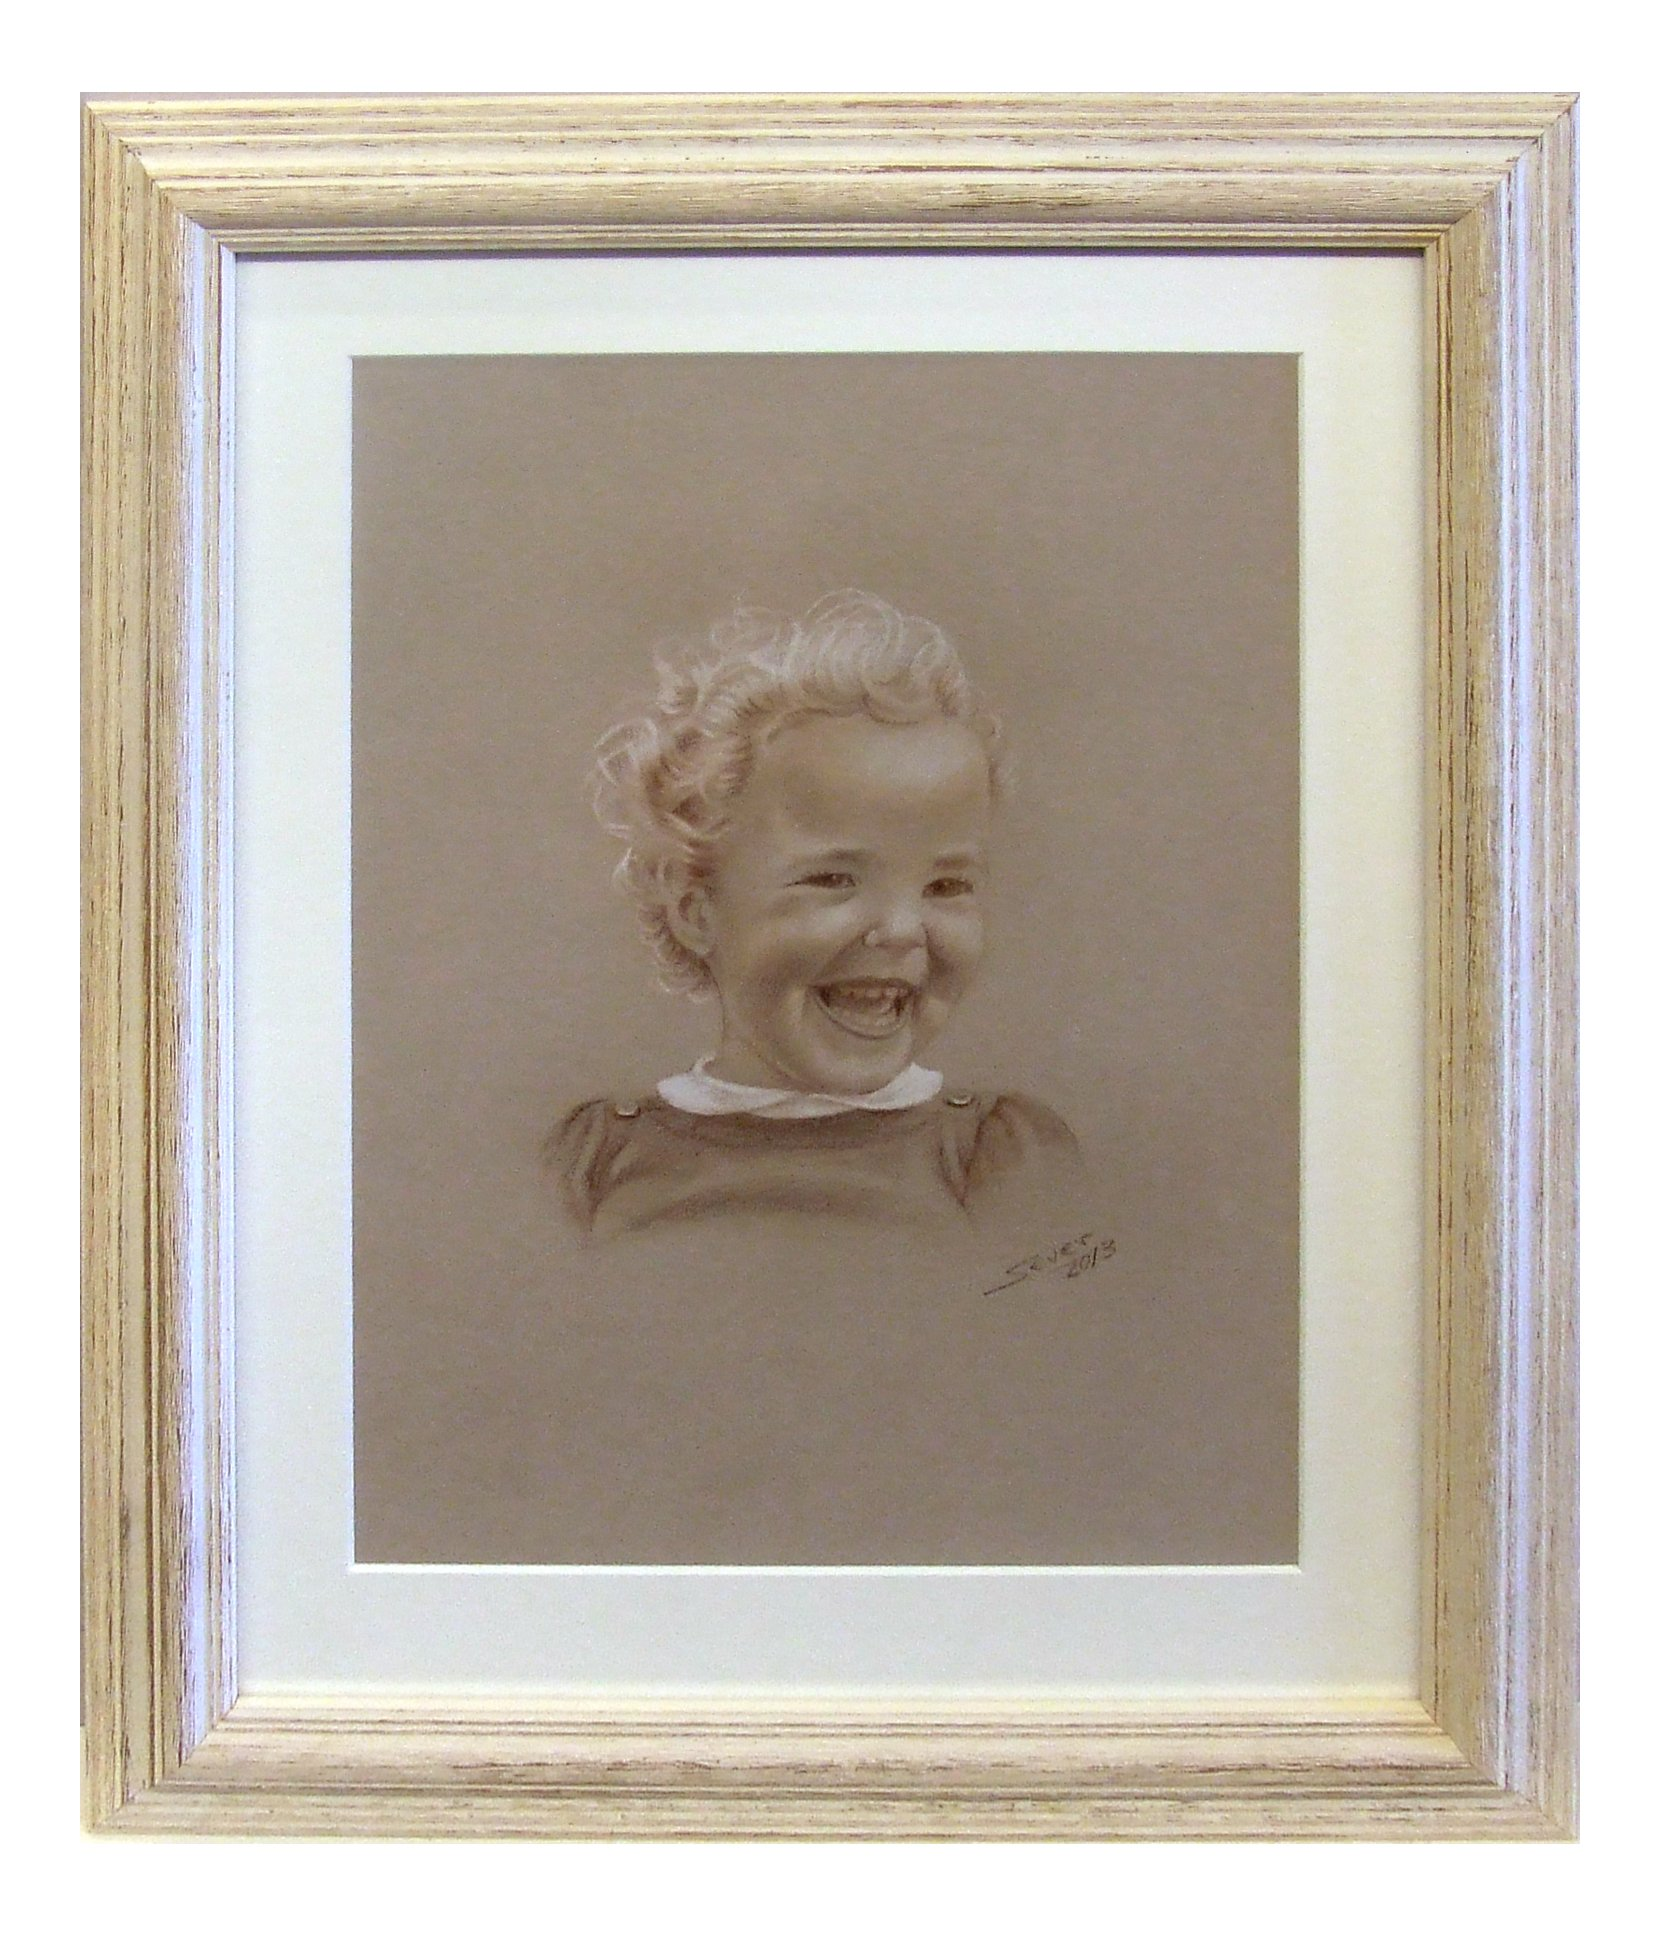 A canvas of a baby picture